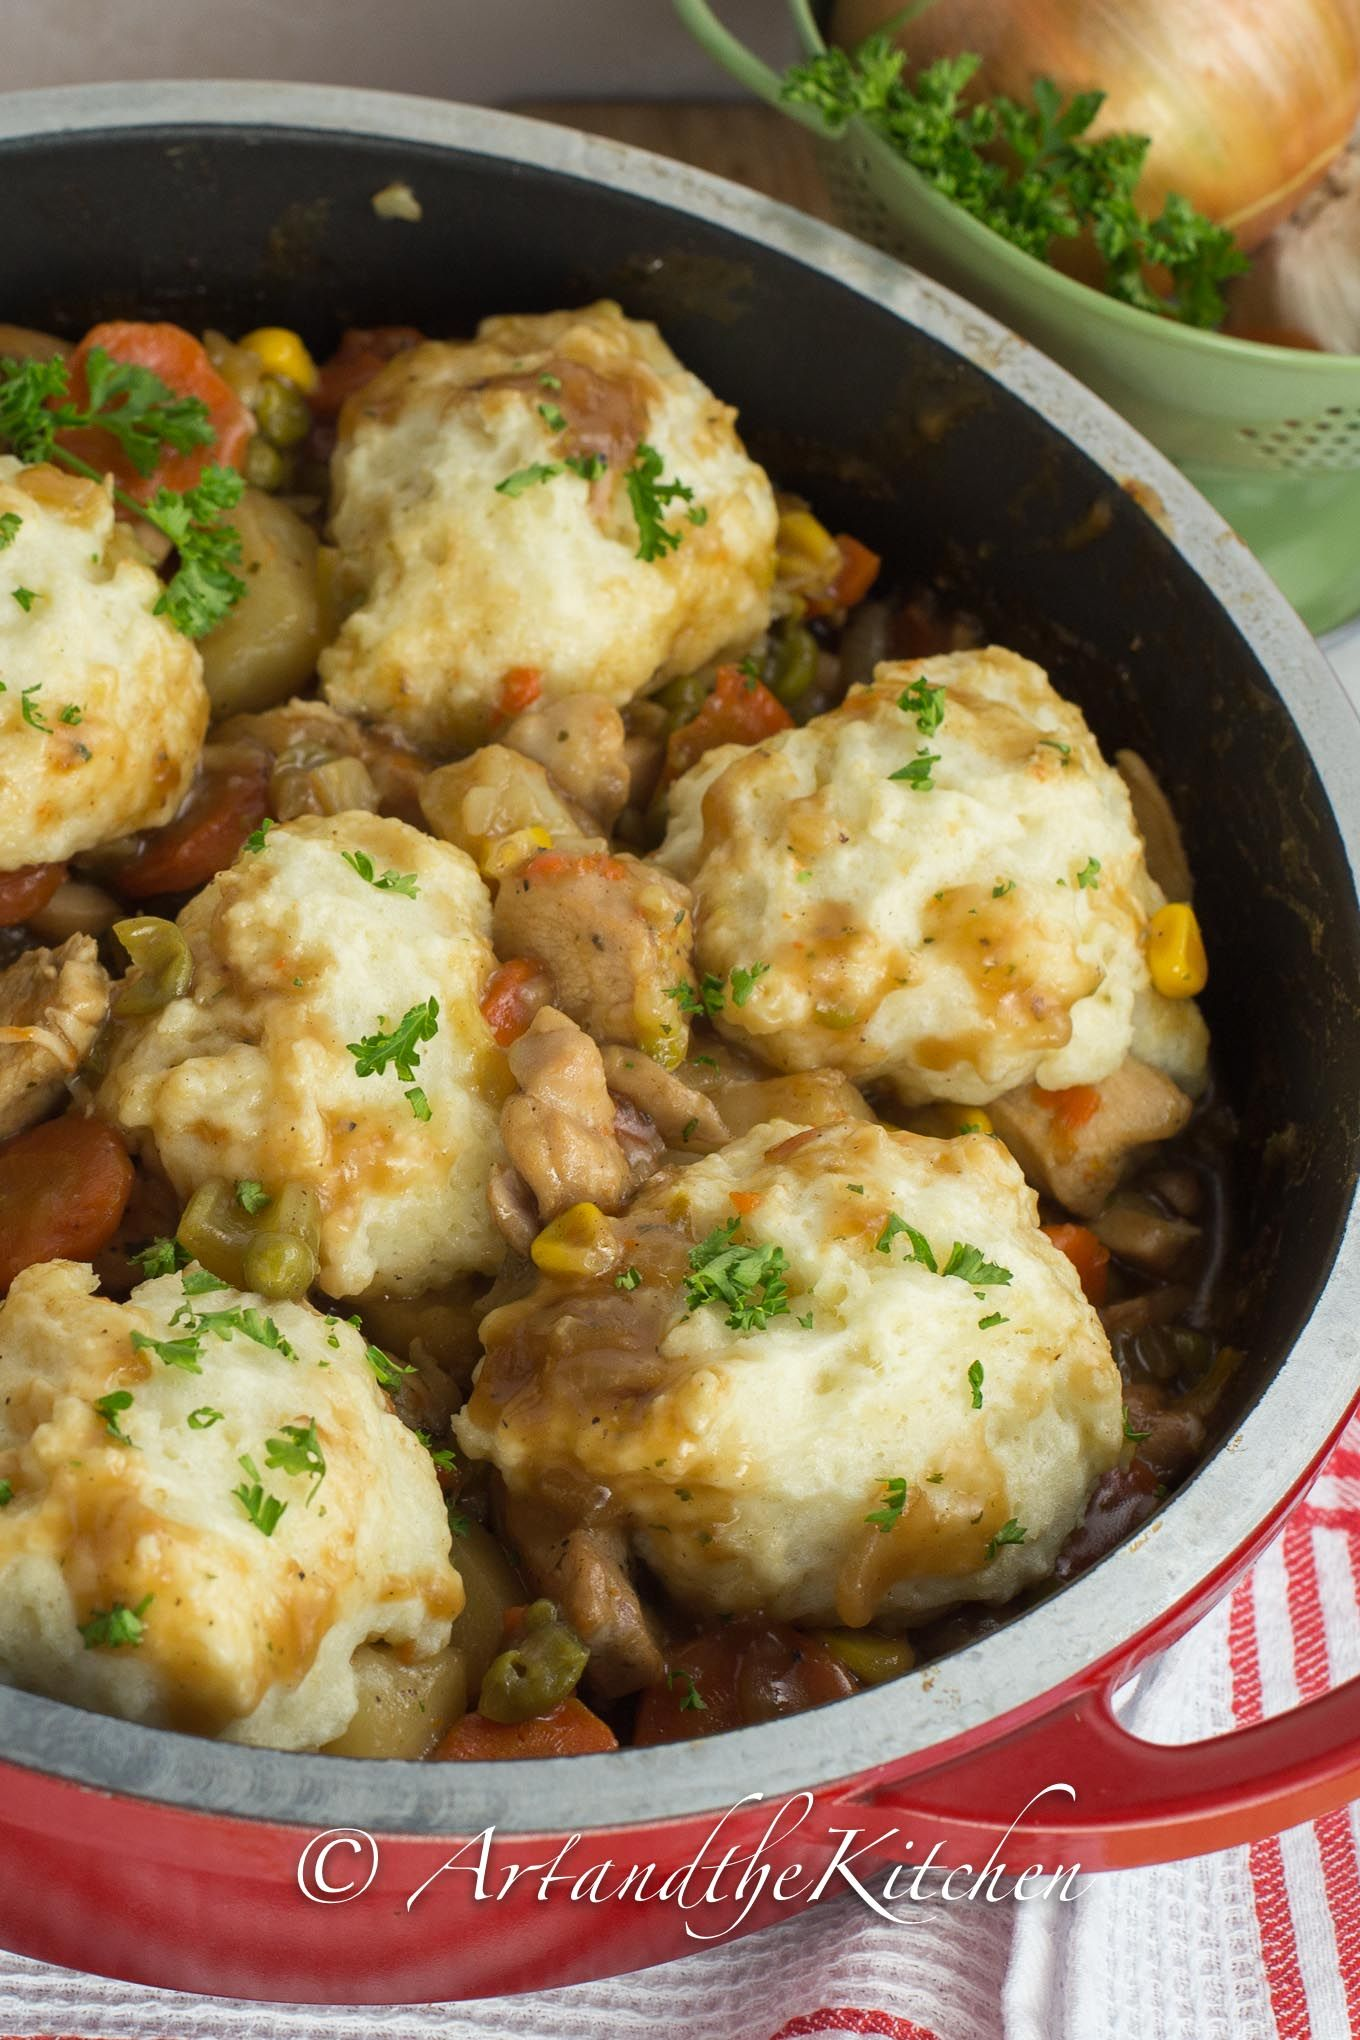 A true classic comfort food recipe is Chicken and Dumplings. This one pot meal is so hearty with chunks of chicken and vegetables topped with light and fluffy dumplings